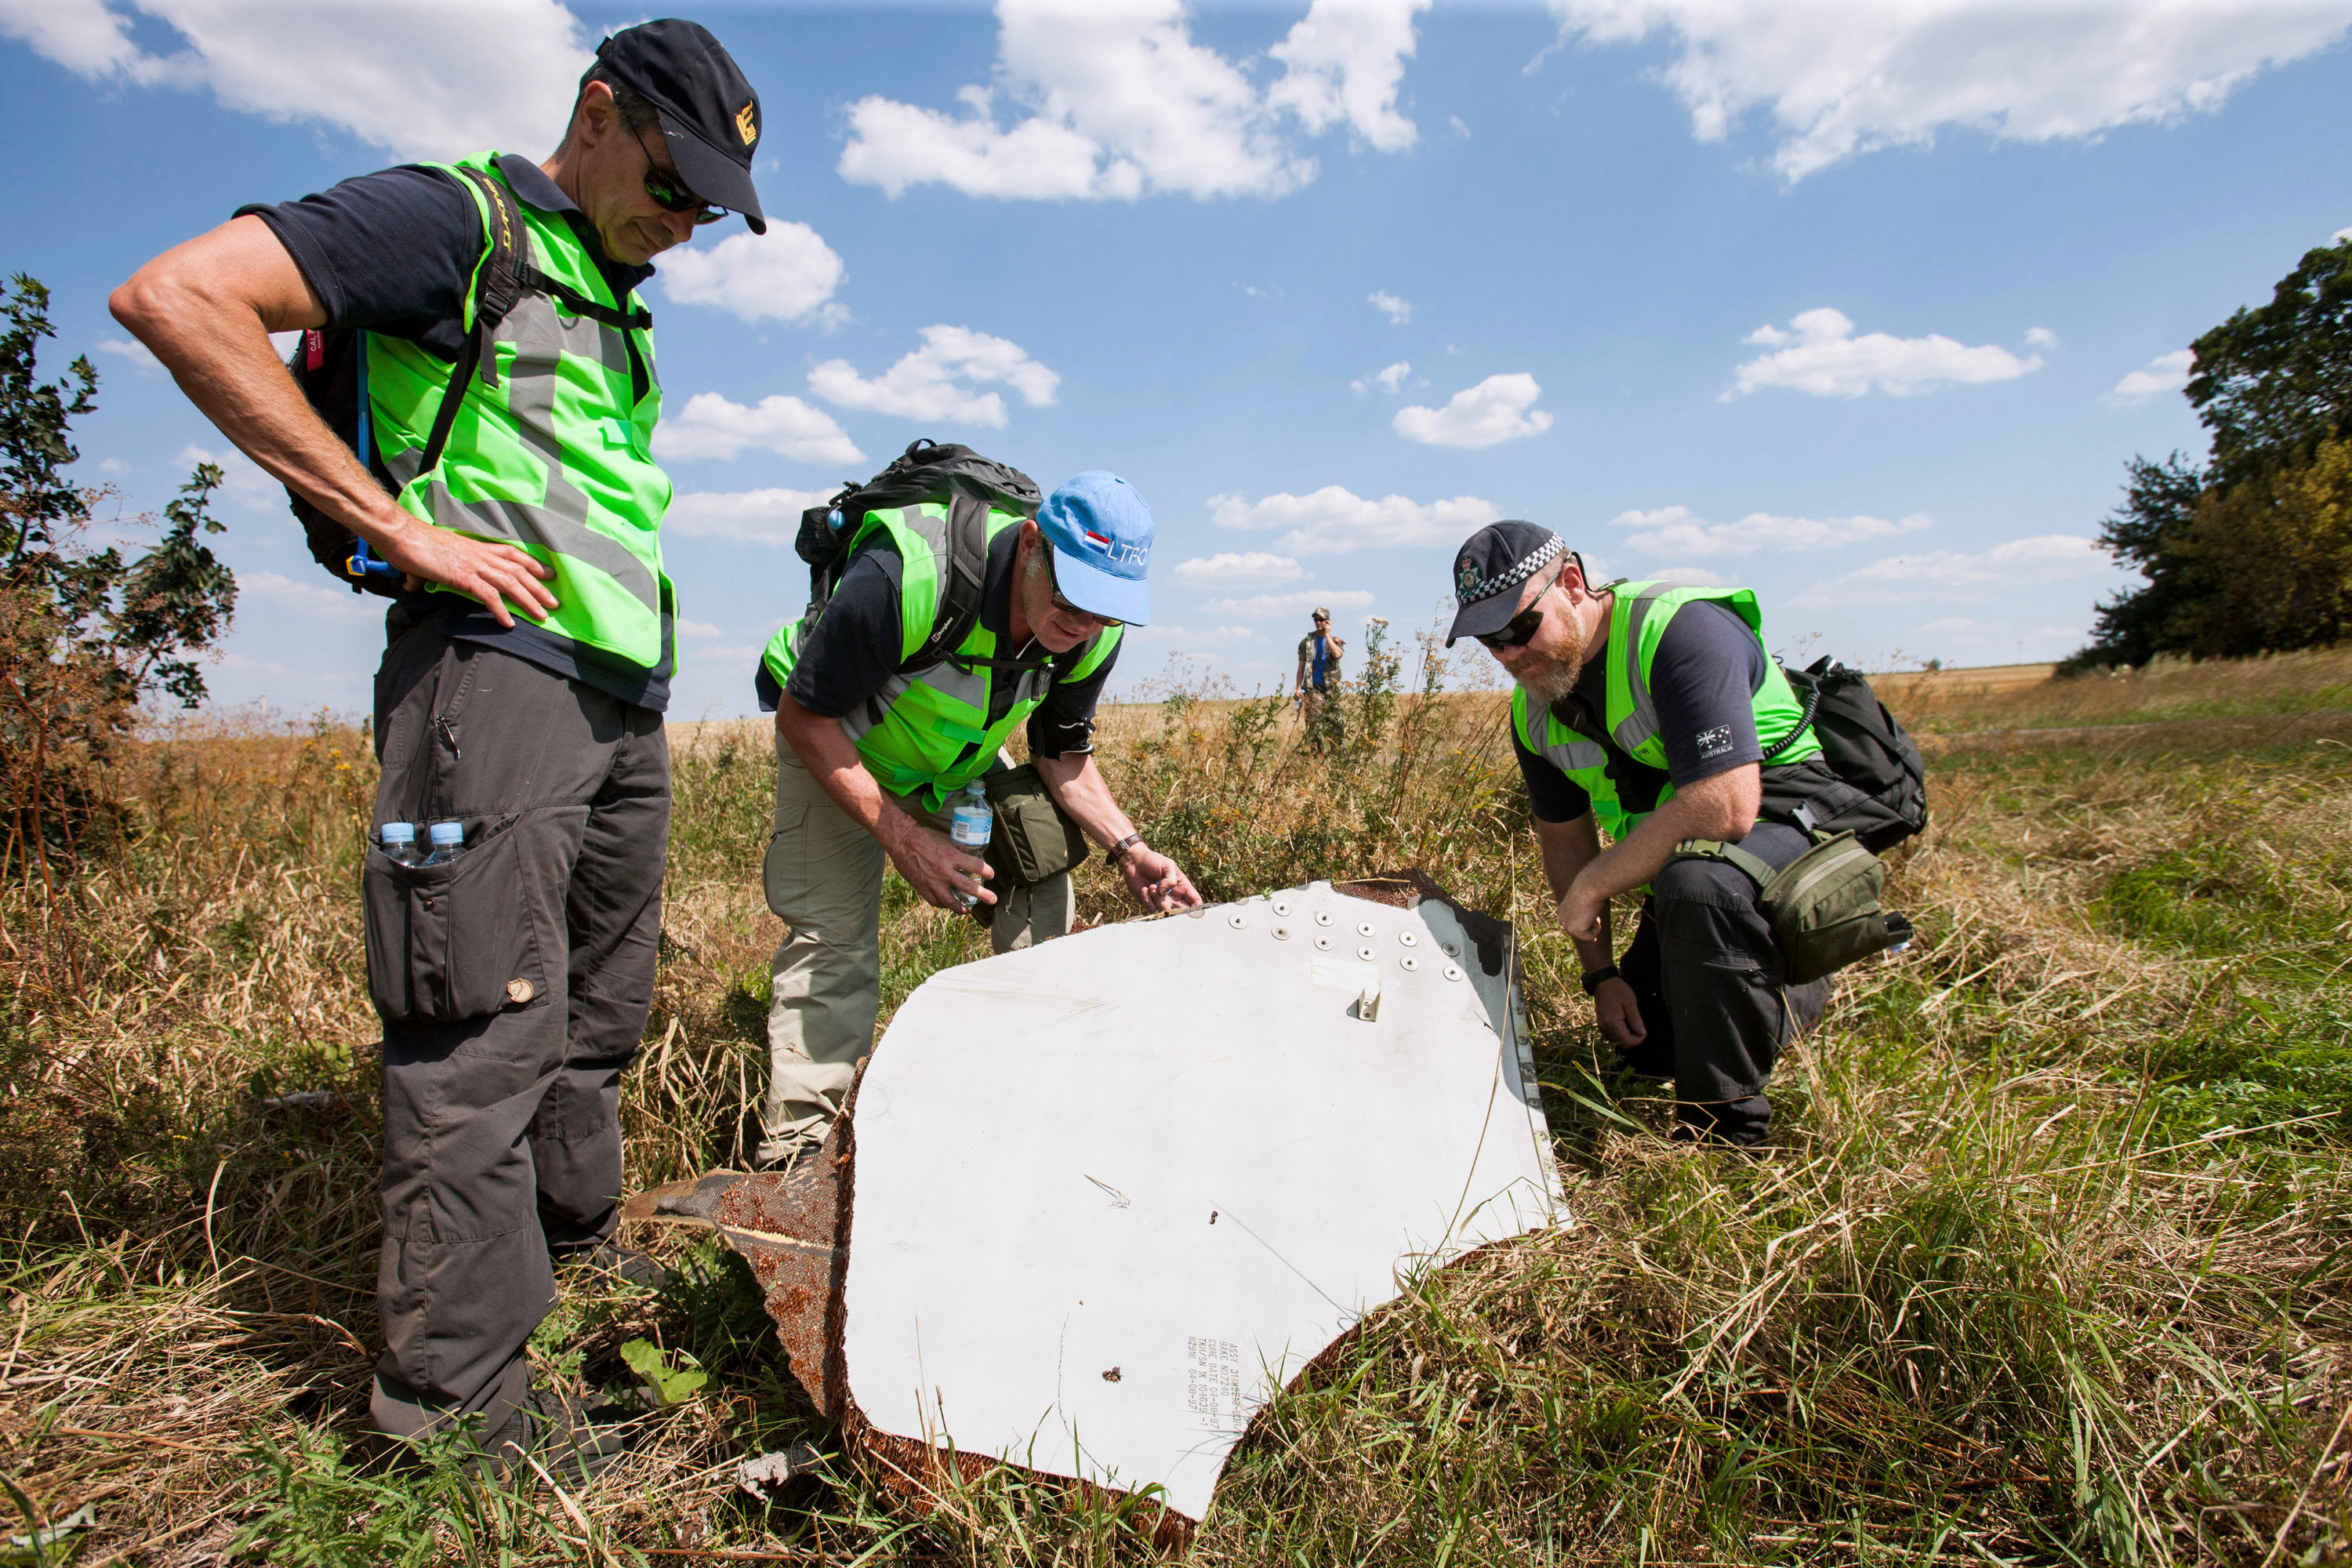 Malaysian Airliner Flight 17 Shot Down With Russian Missile Featured